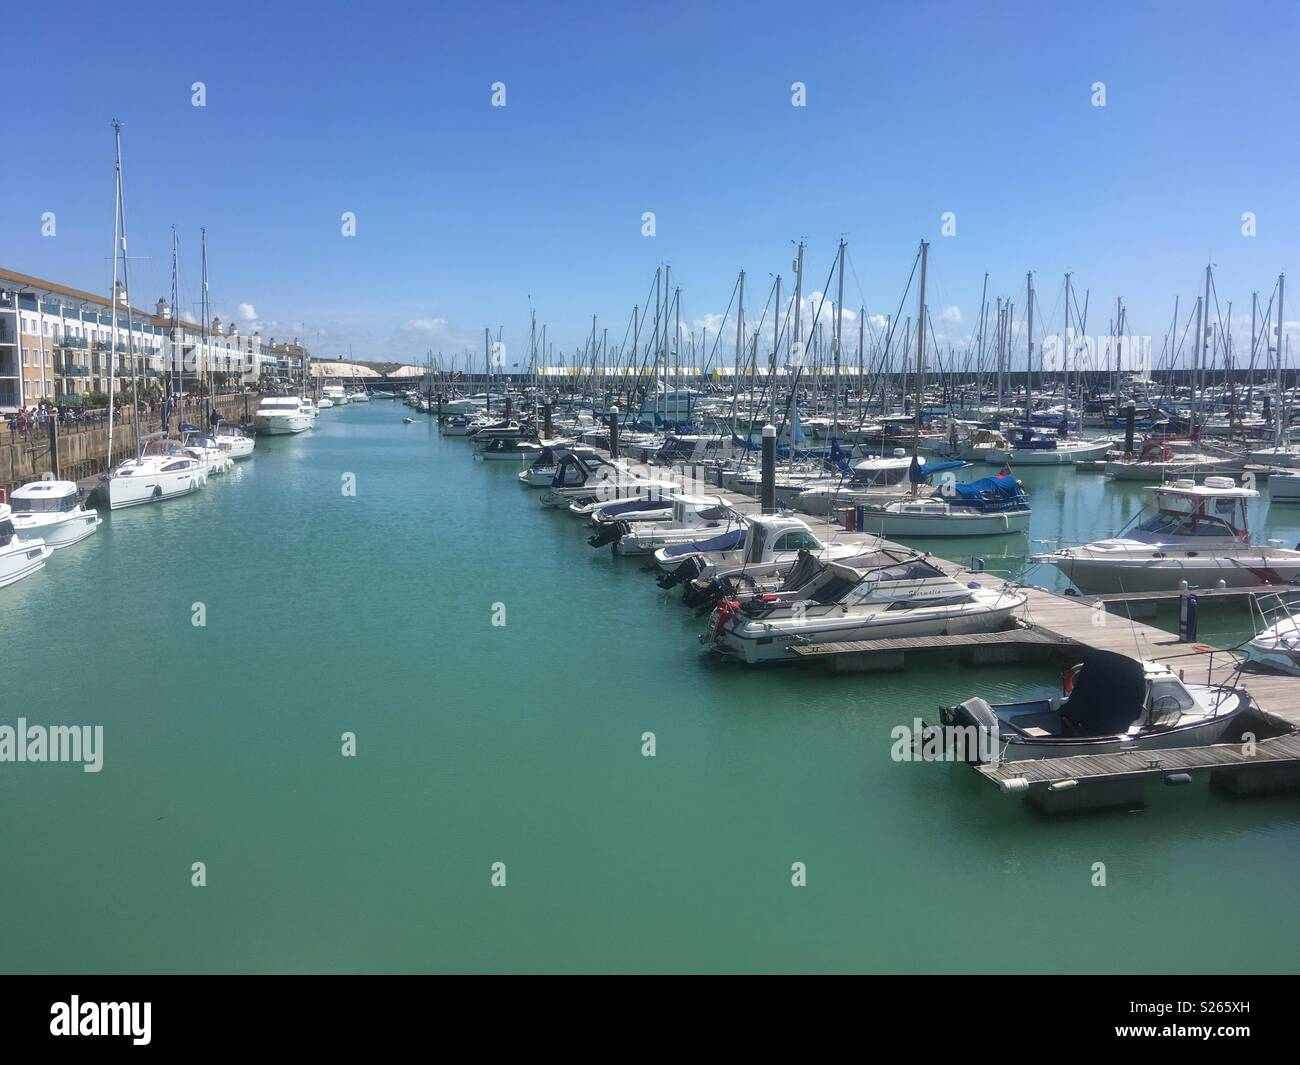 A view of the boats moored at Brighton Marina Village, East Sussex, England. Visited on a sunny Sunday in Summer. - Stock Image